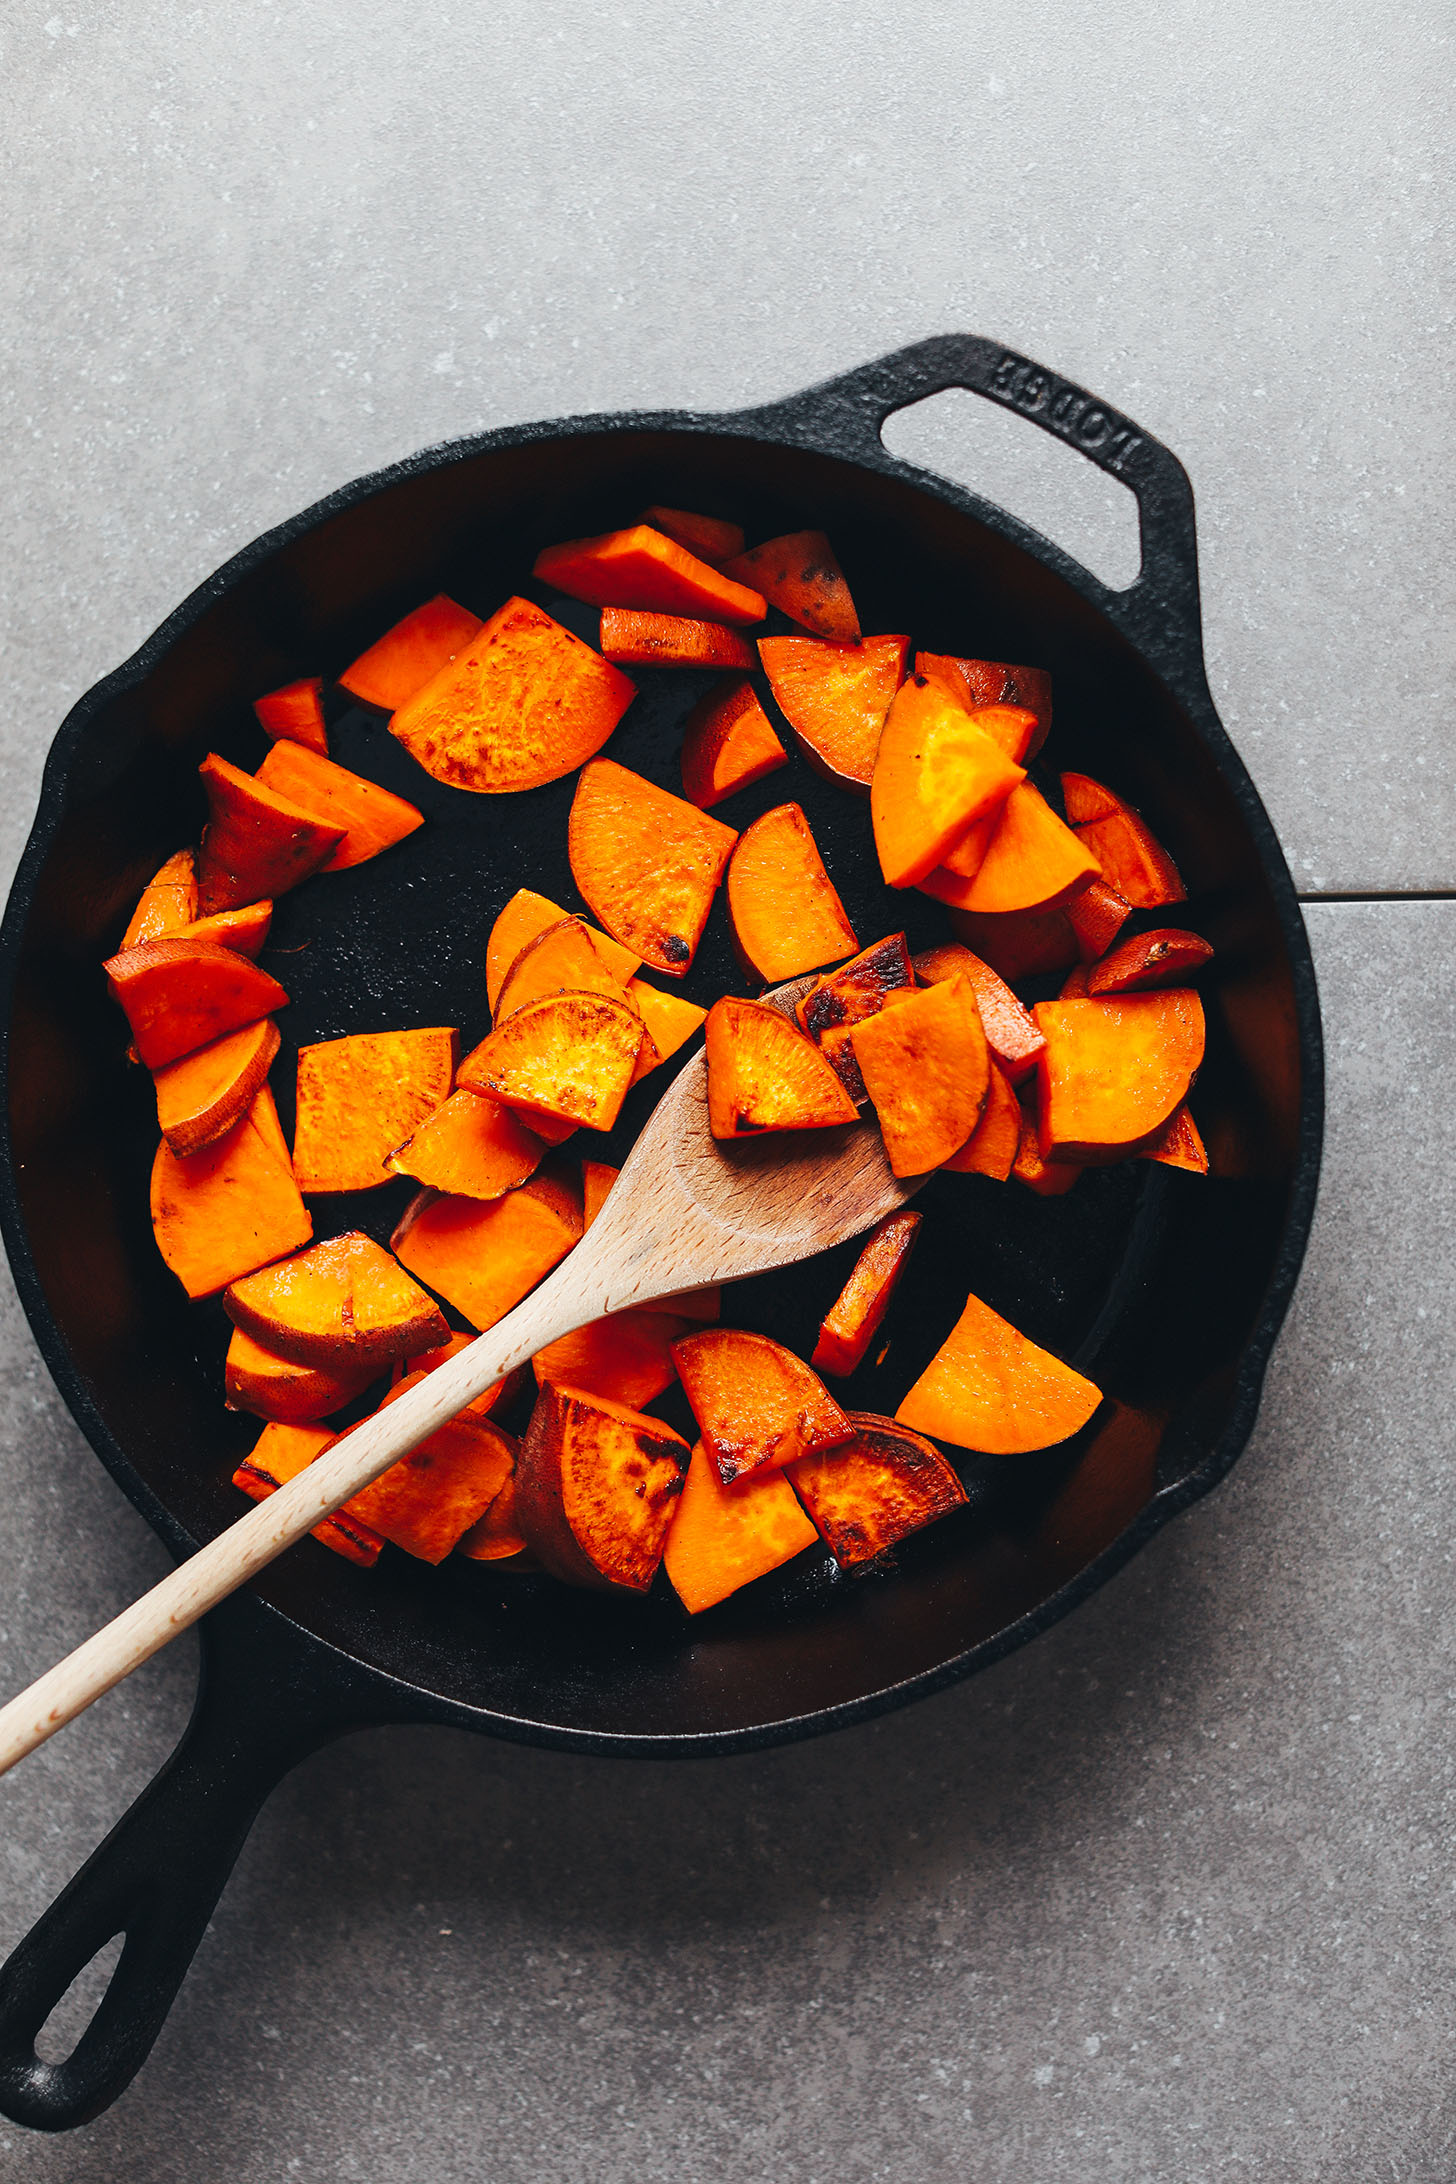 Browning sweet potatoes in a cast iron skillet for Vegan Breakfast Salad